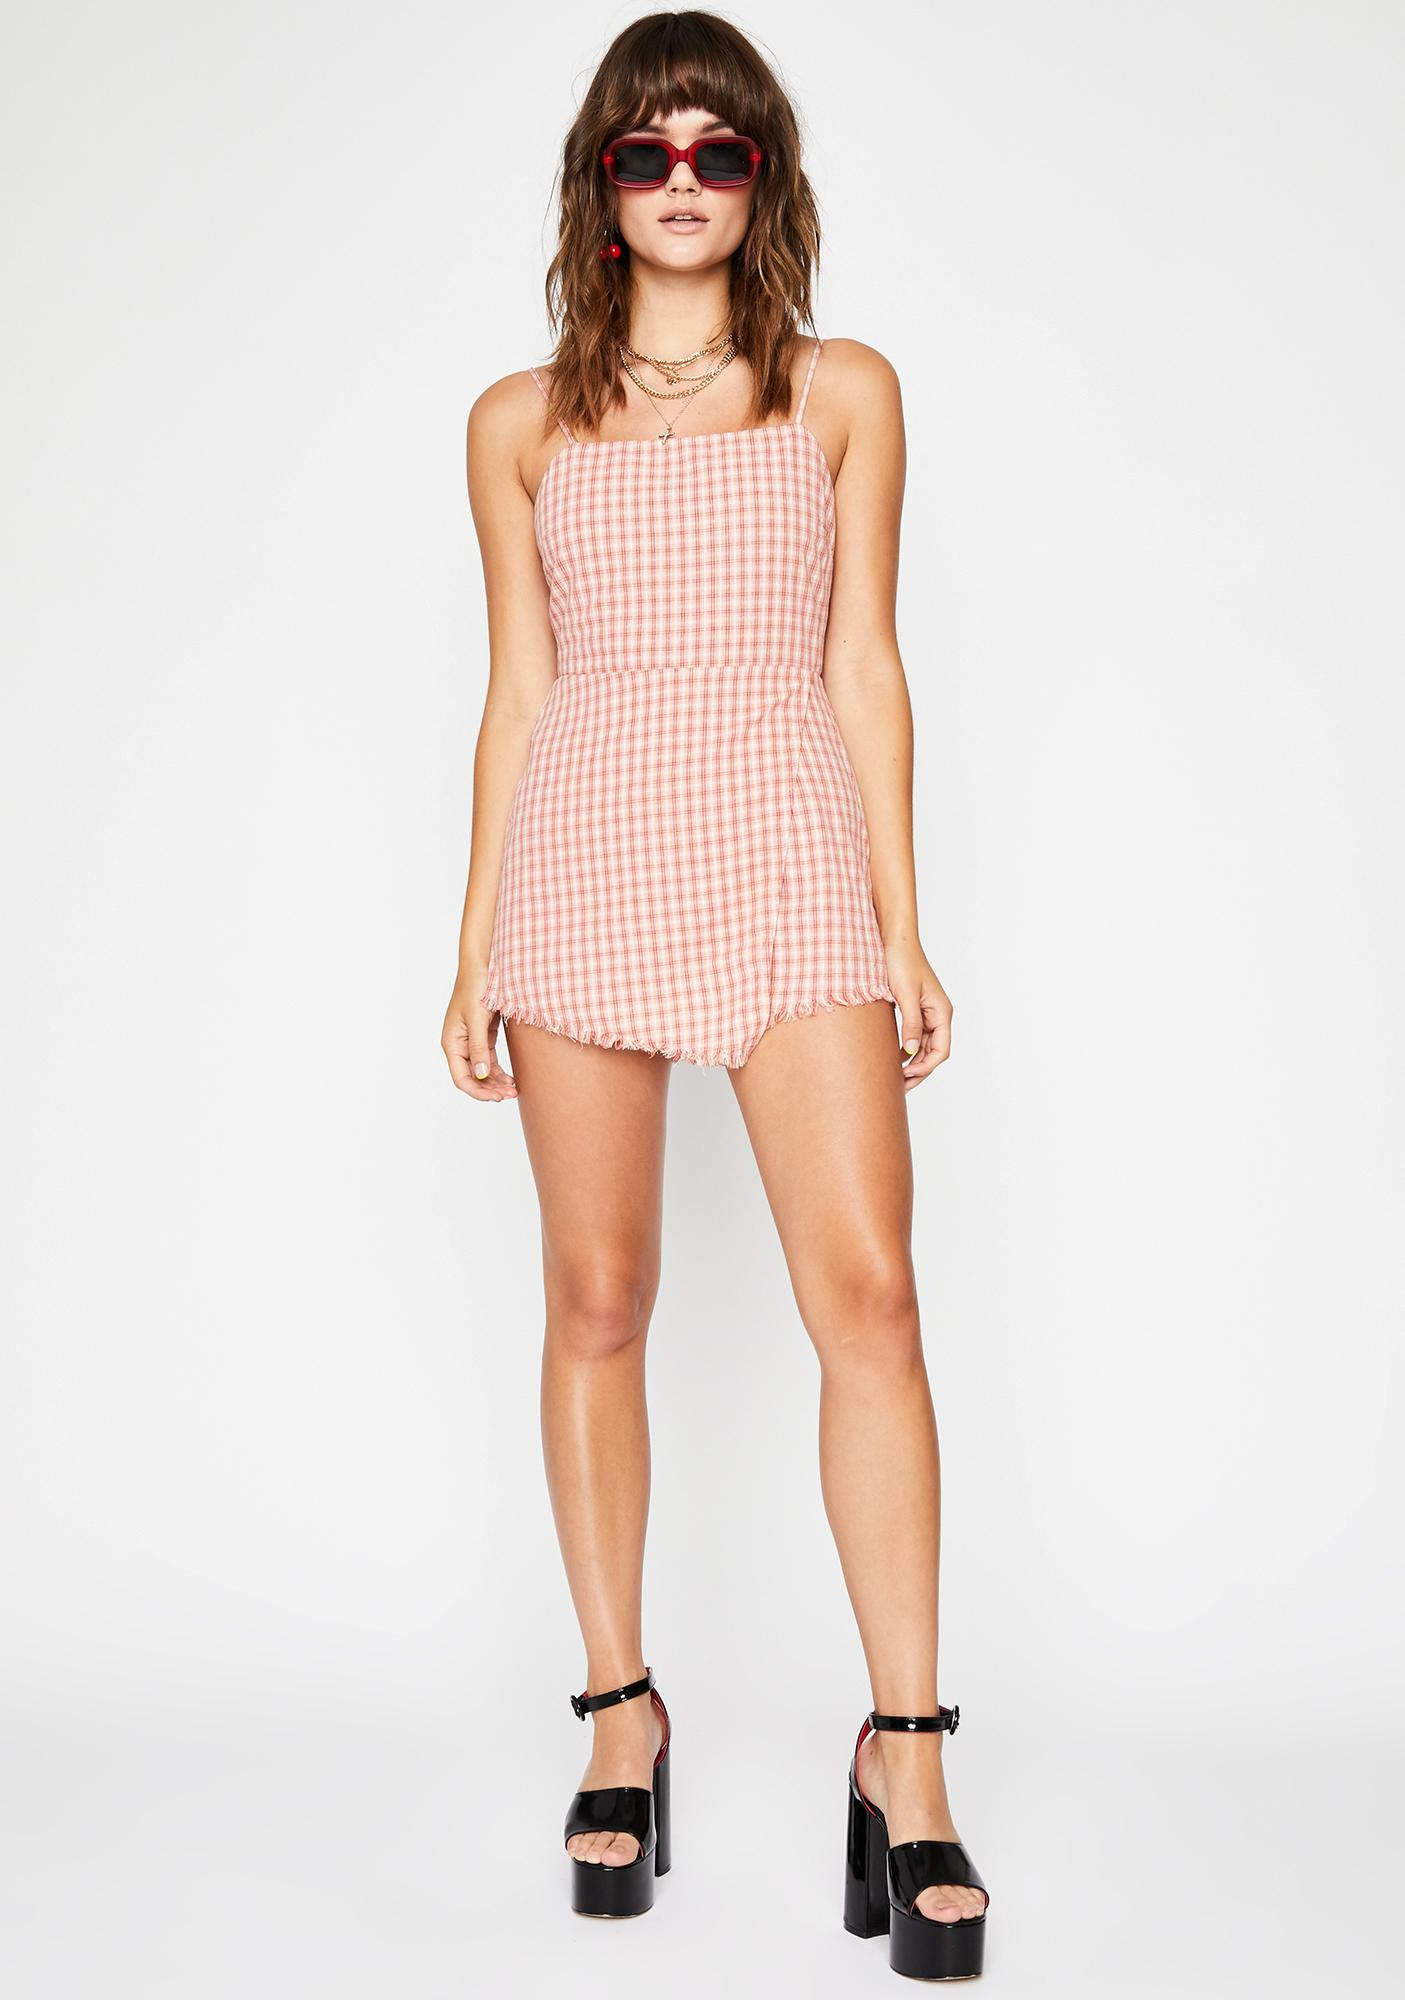 Pretty Adorable Trouble Gingham Romper